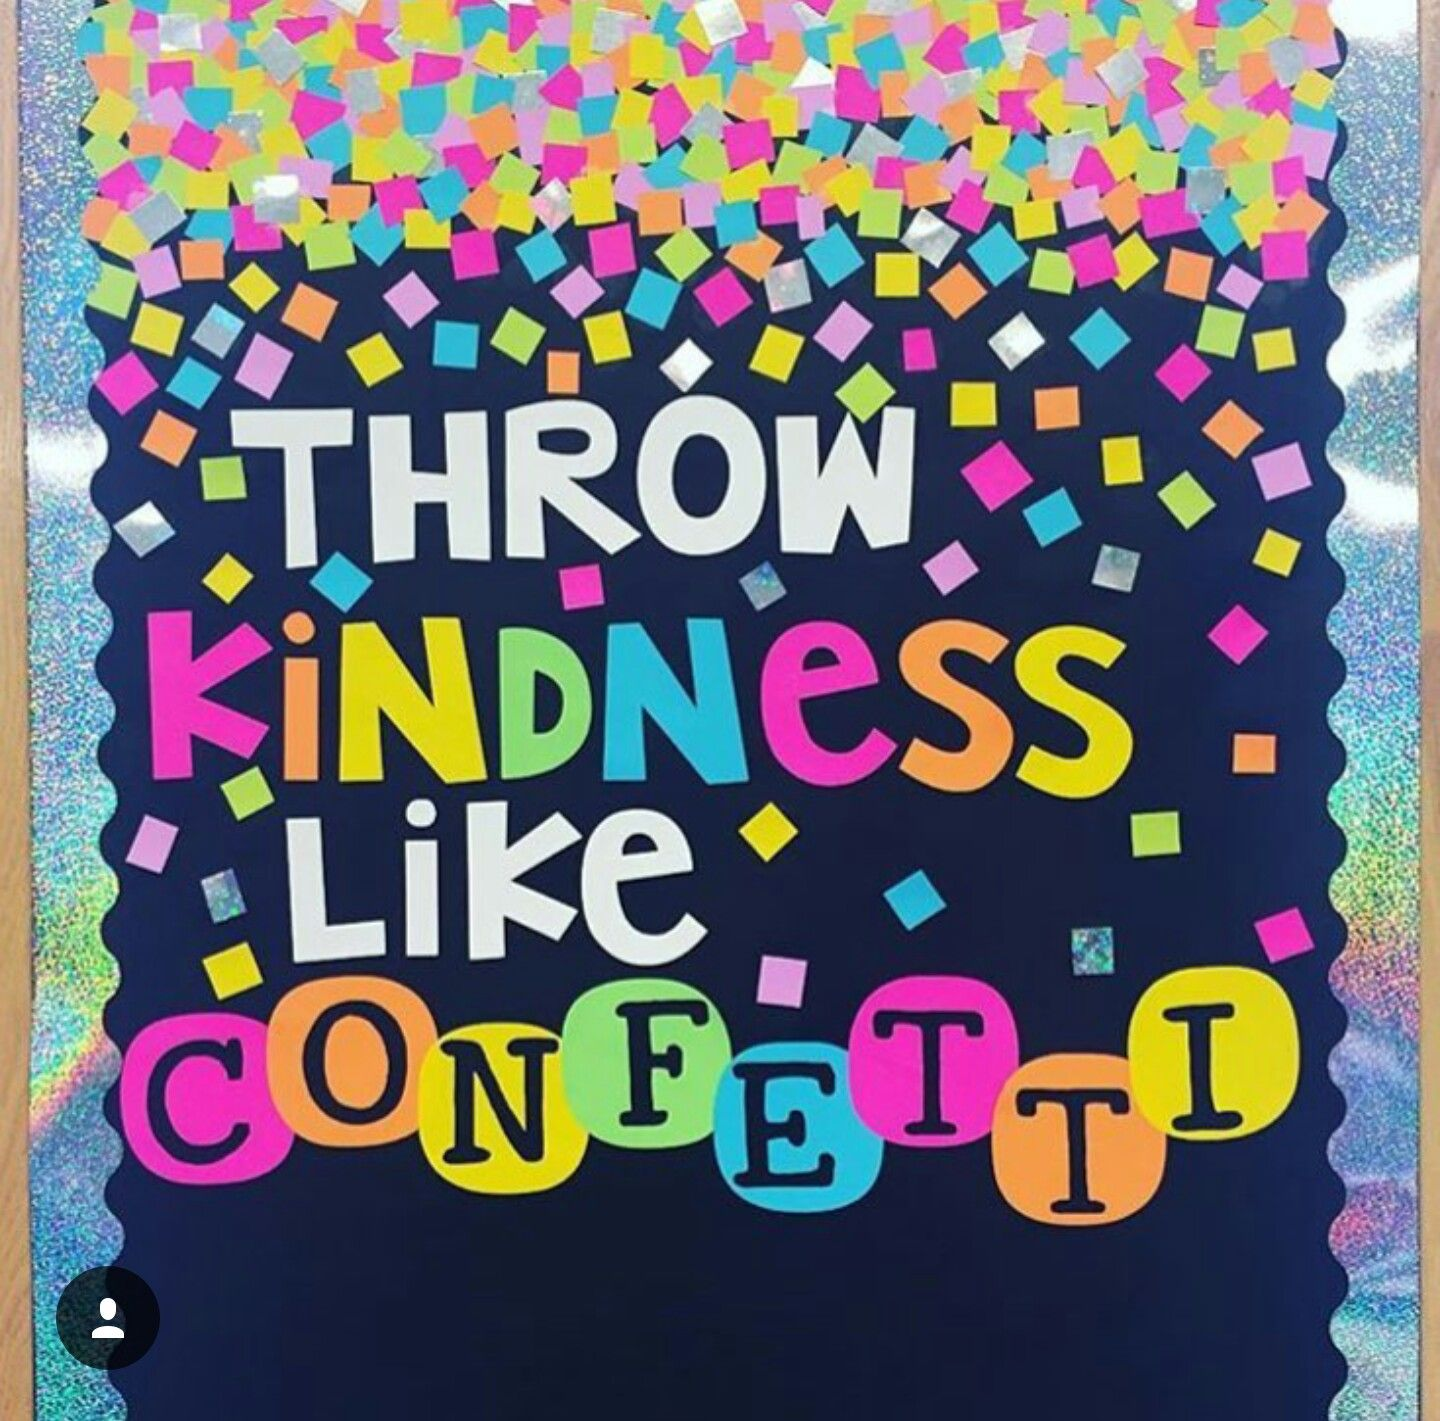 Interactive Bulletin Board Idea Use Post Its And Have Residents Write Acts Of Kindness On Them Classroom Bulletin